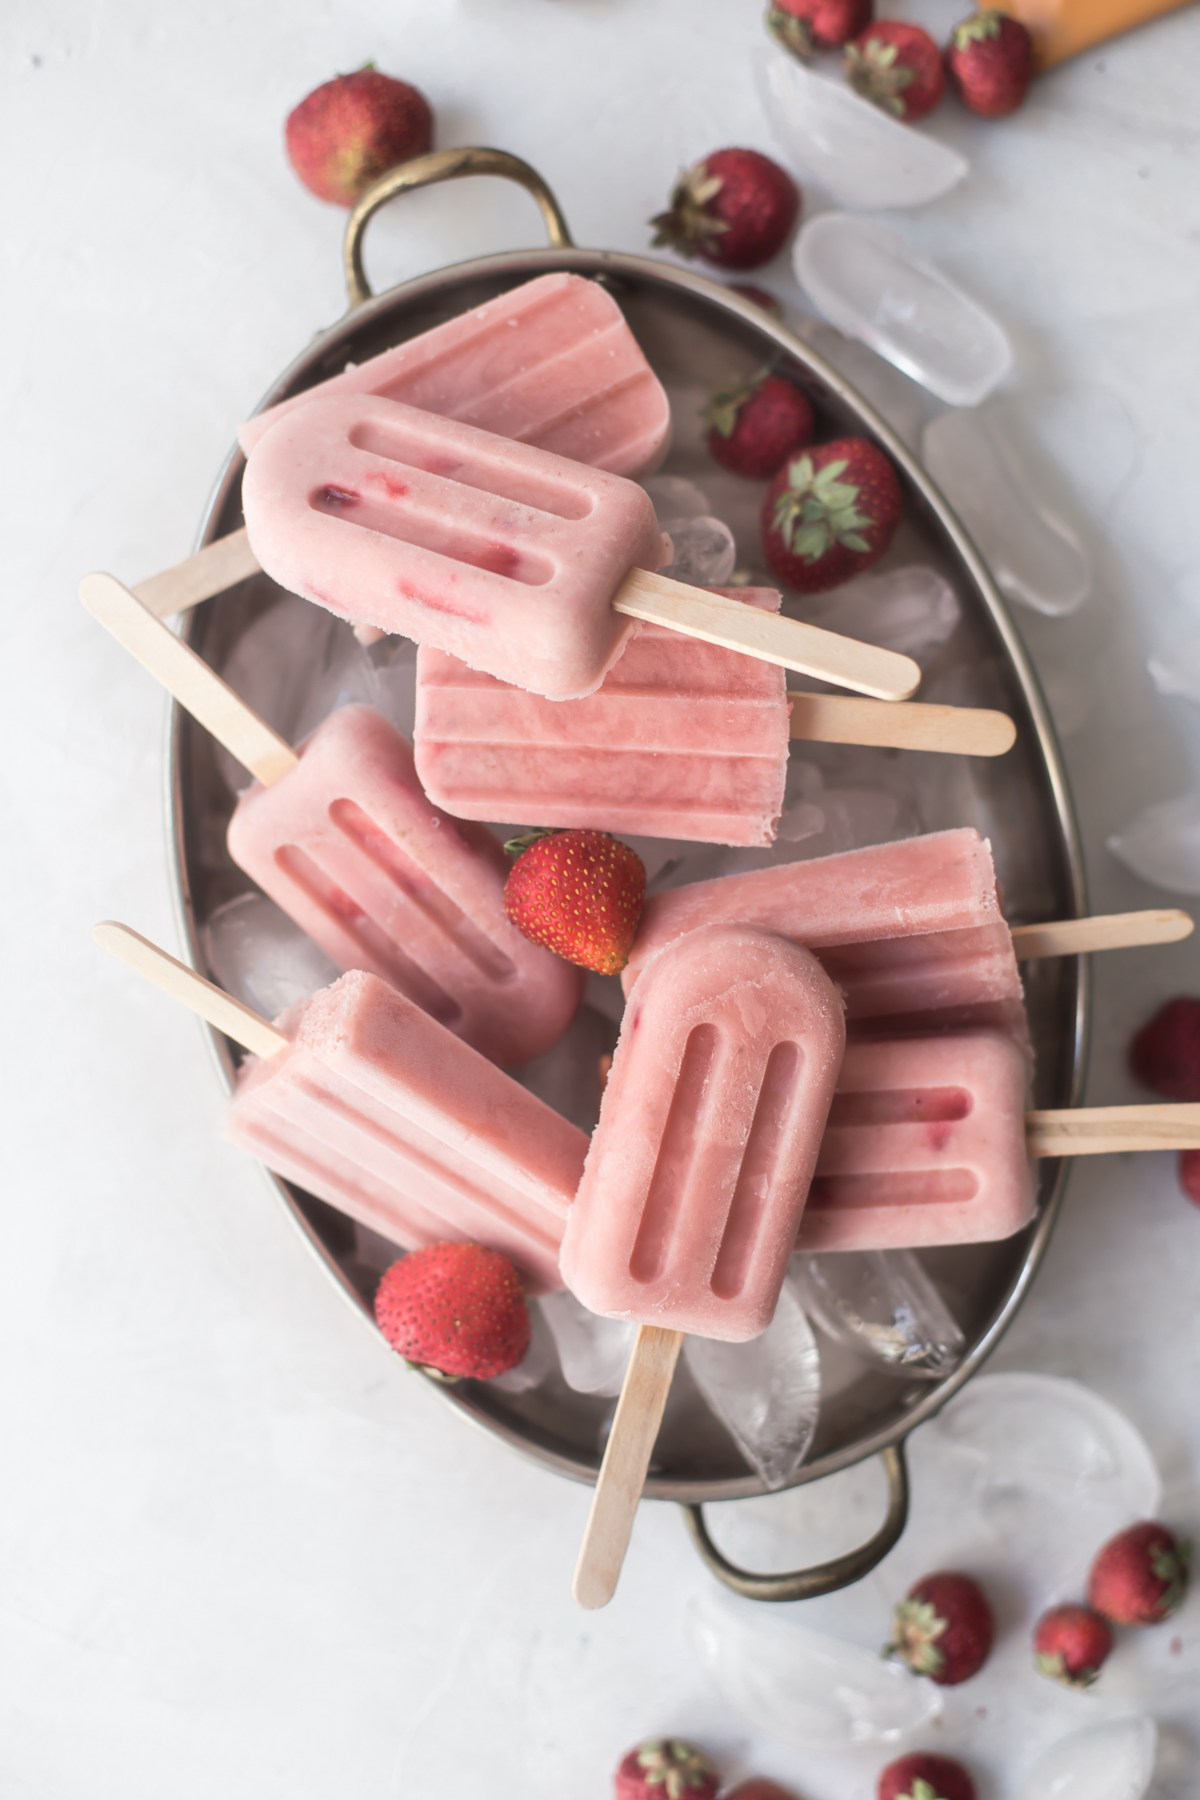 Oliveandartisan - Peppermint Strawberry Creamsicles recipe